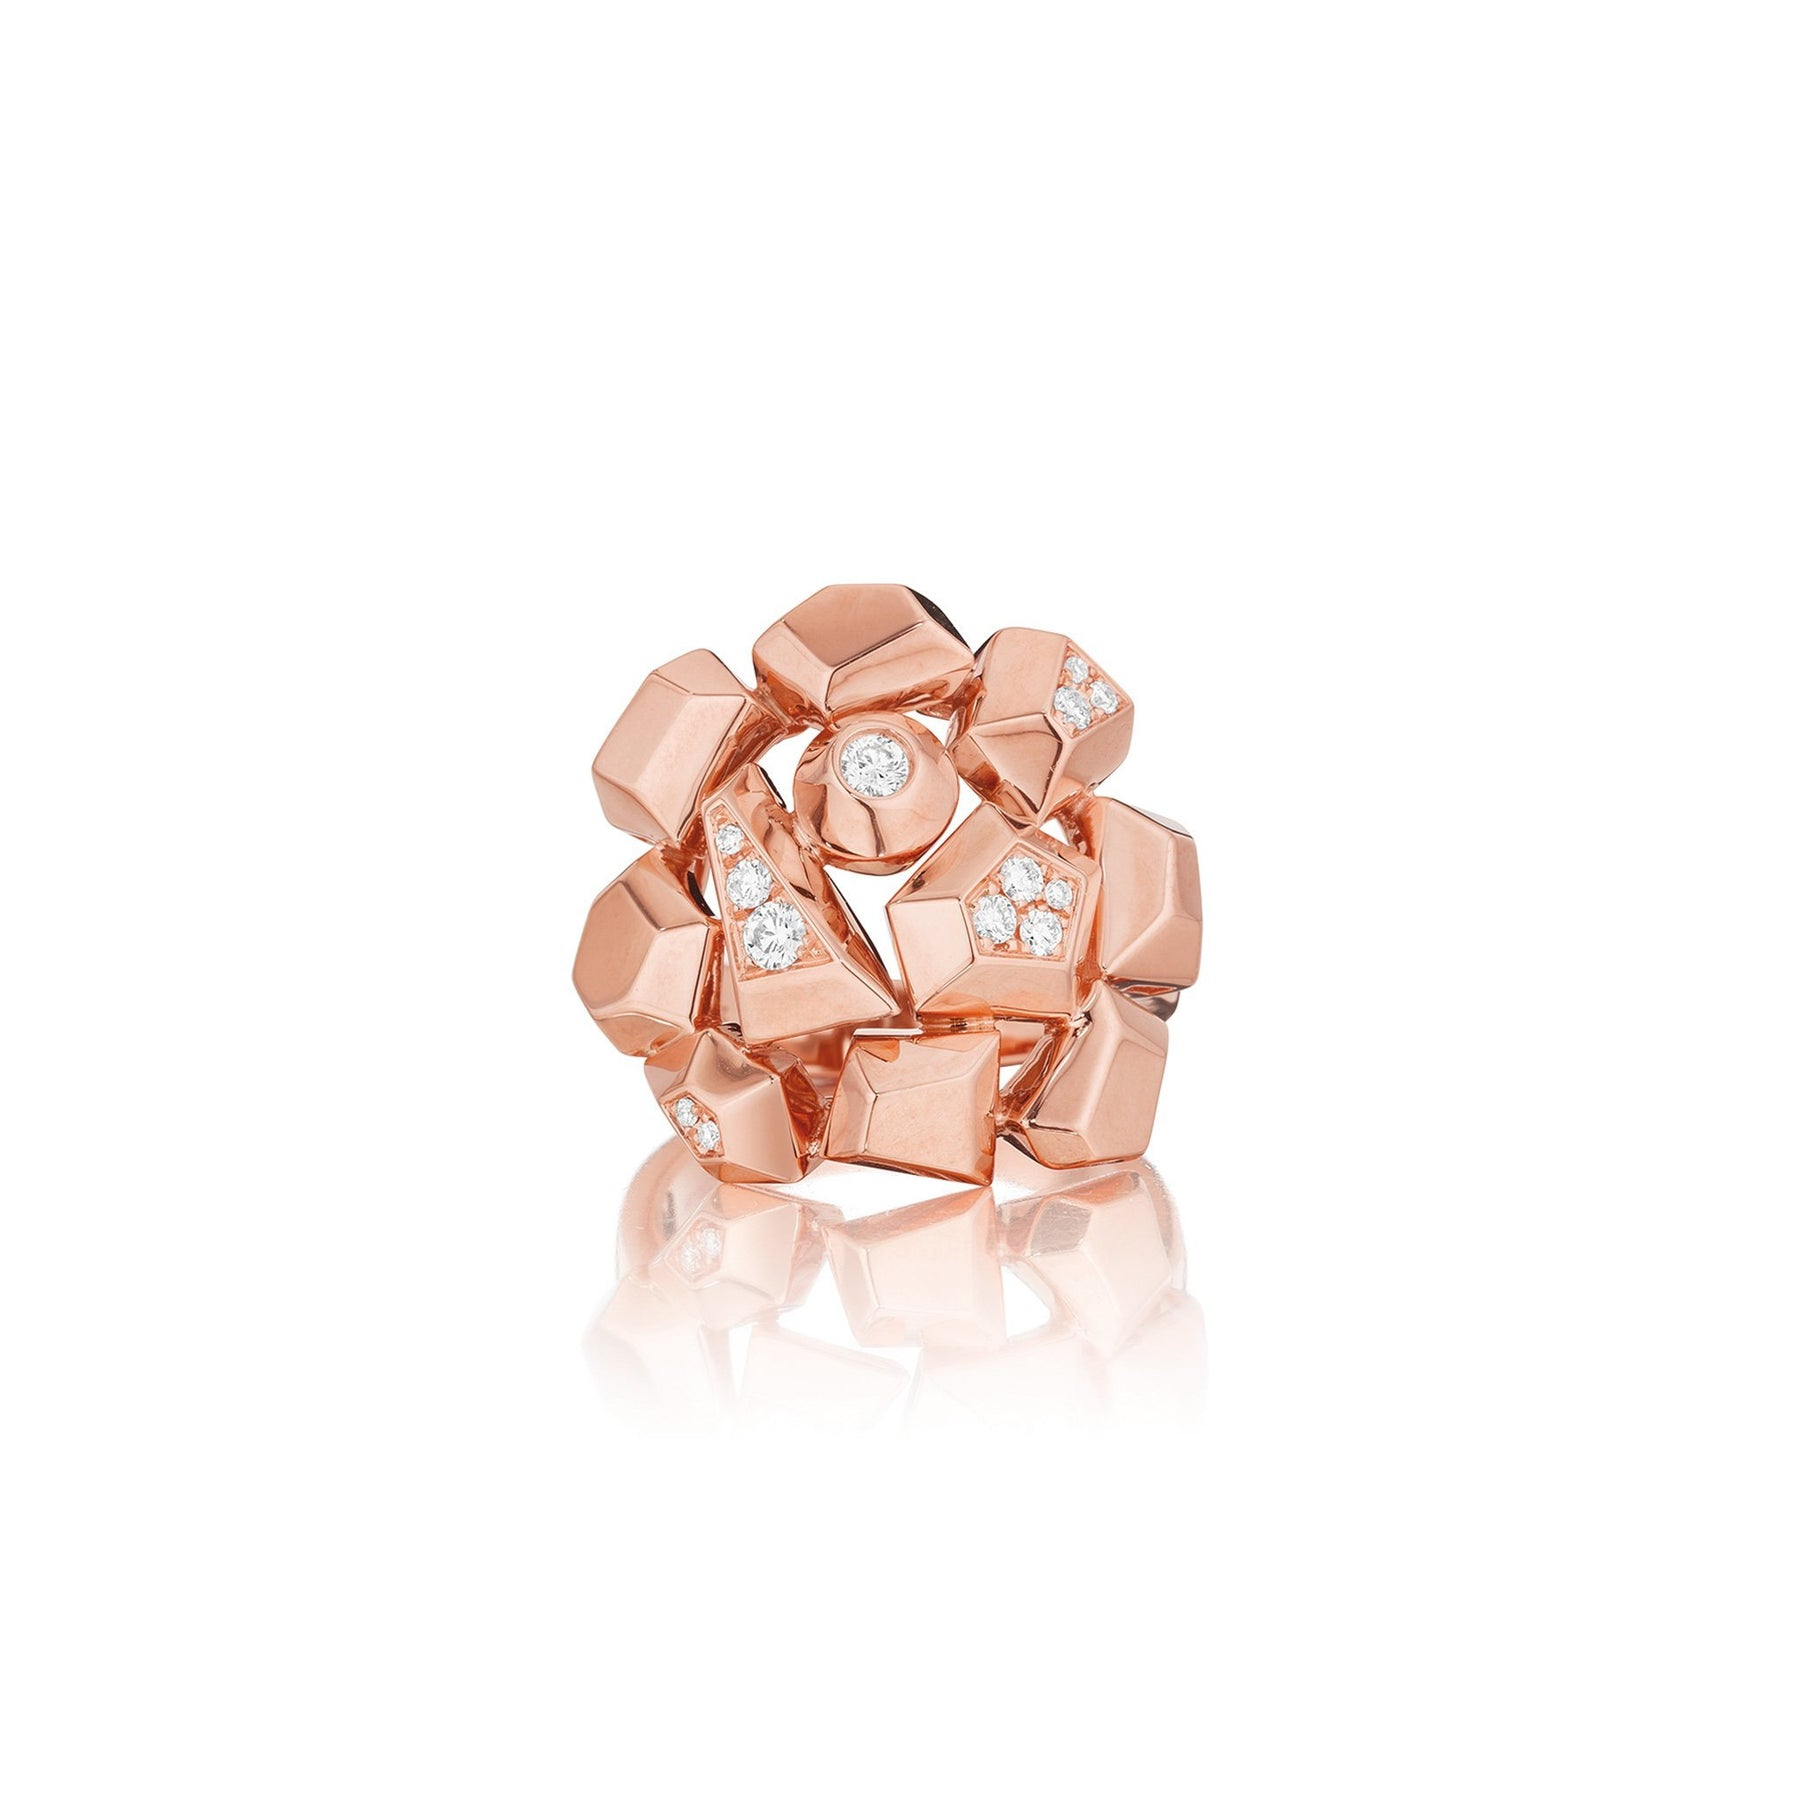 Mimi-So-Jackson-Cluster-Diamond-Ring_18k Rose Gold